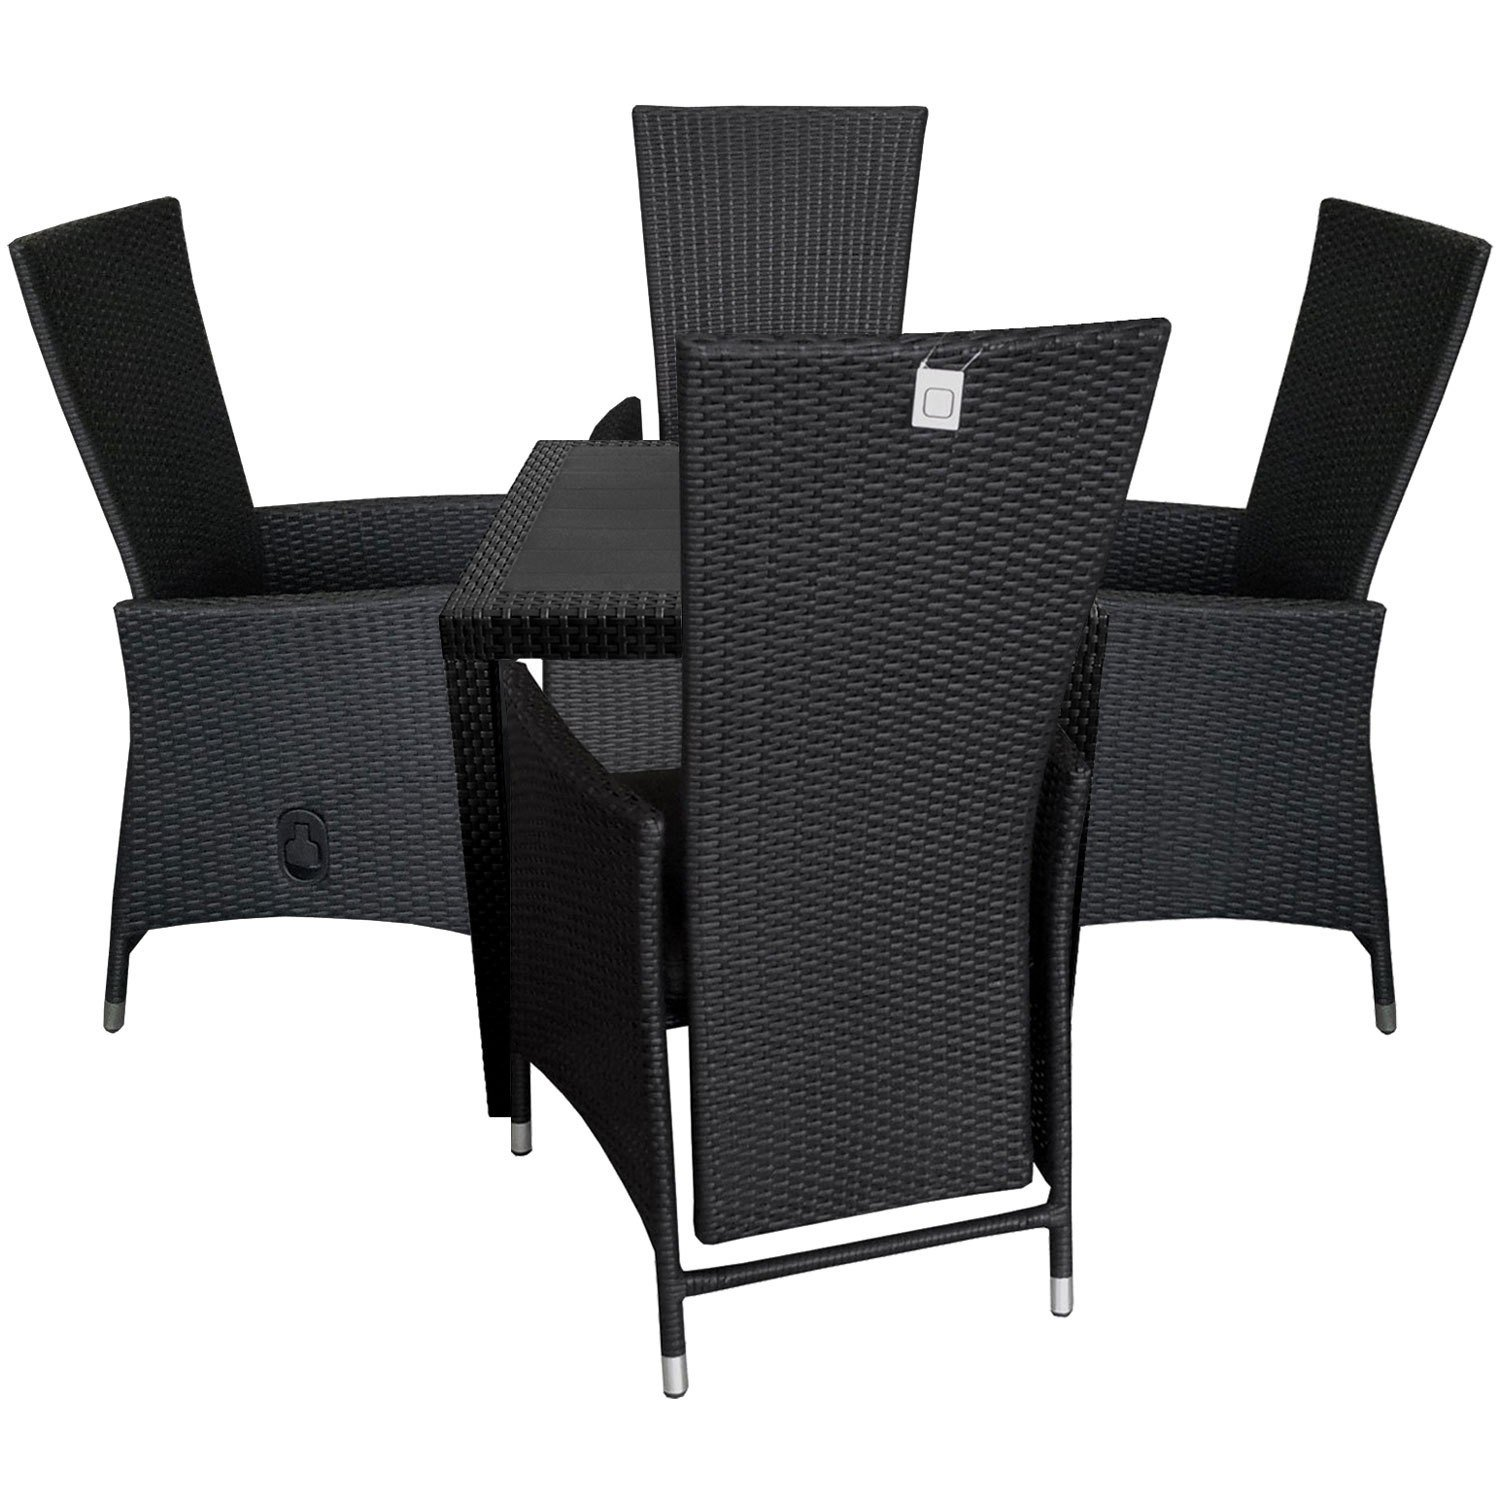 5tlg terrassenm bel set kunststoff gartentisch rattan. Black Bedroom Furniture Sets. Home Design Ideas